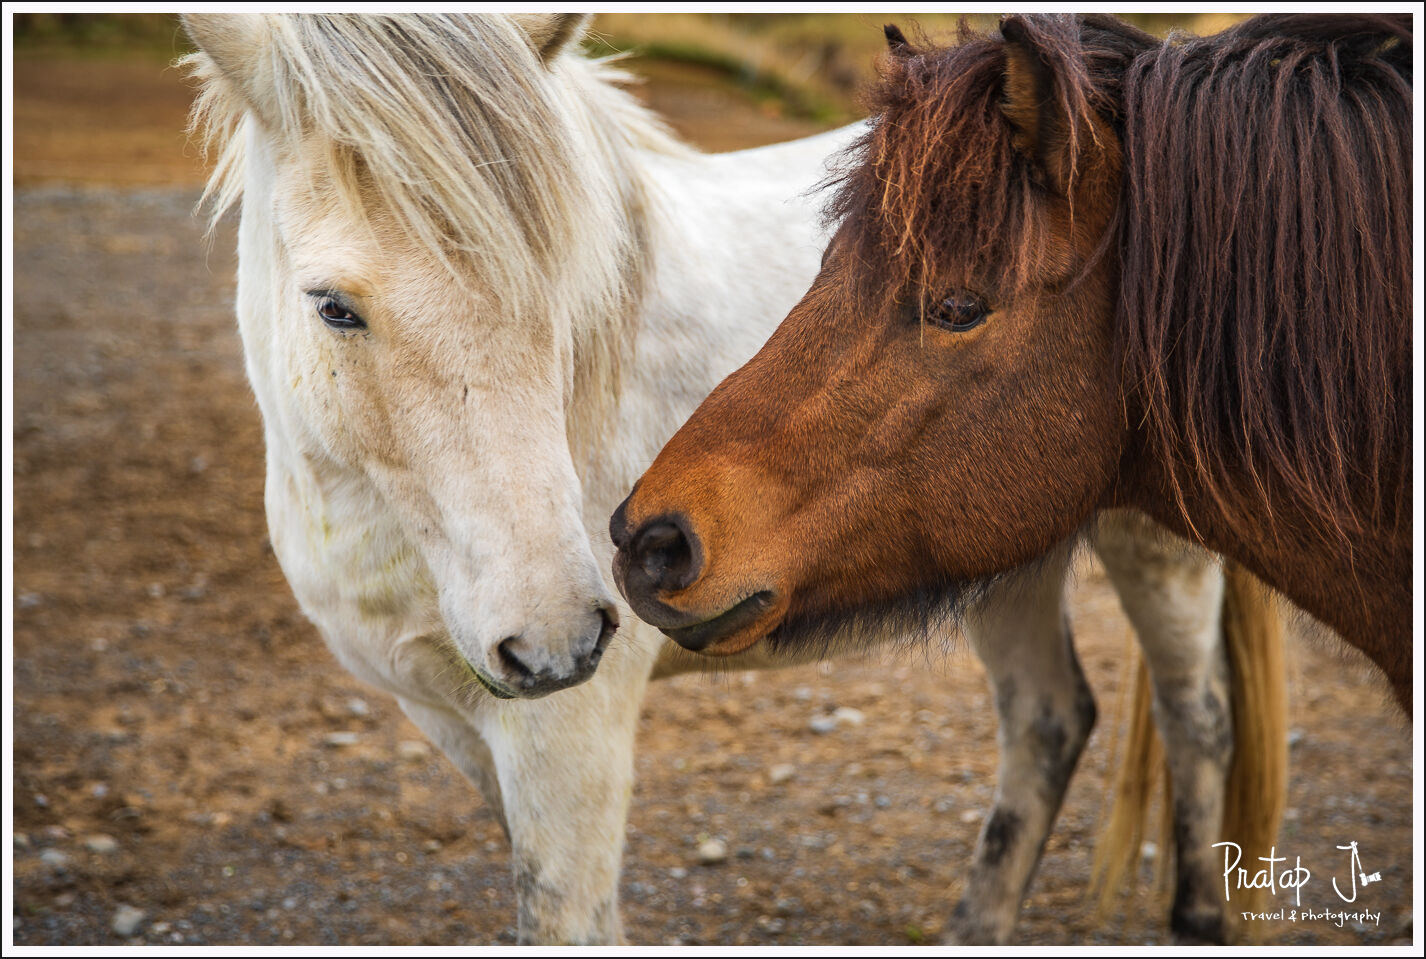 Closeup of two Icelandic horses with their faces close to each other